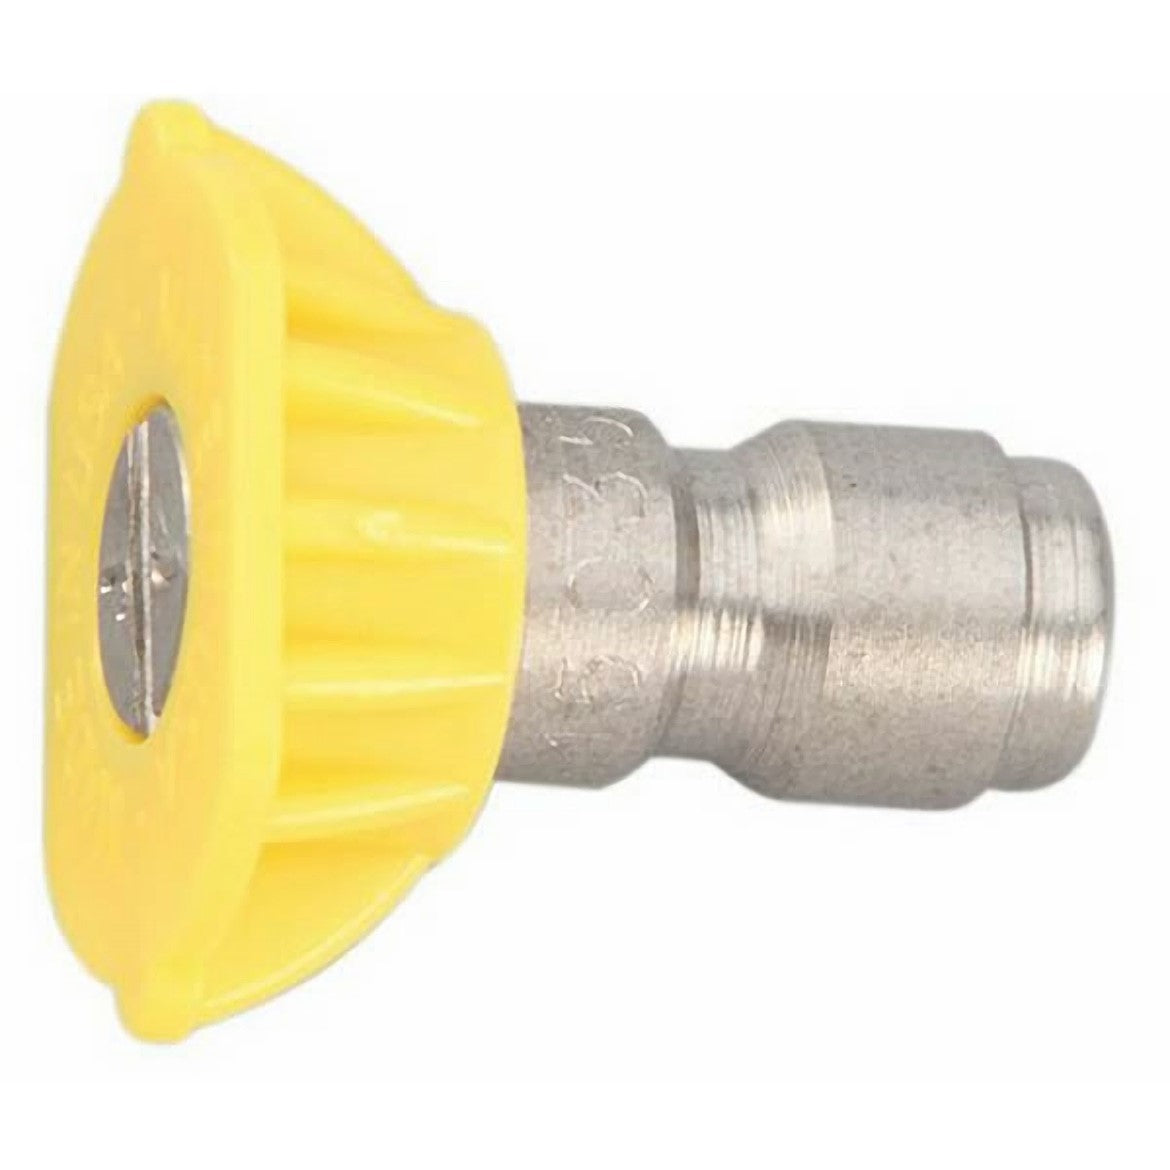 Generac GNC-6639 15-Degree Spray Tip Yellow For Pressure Washer Quick Connect